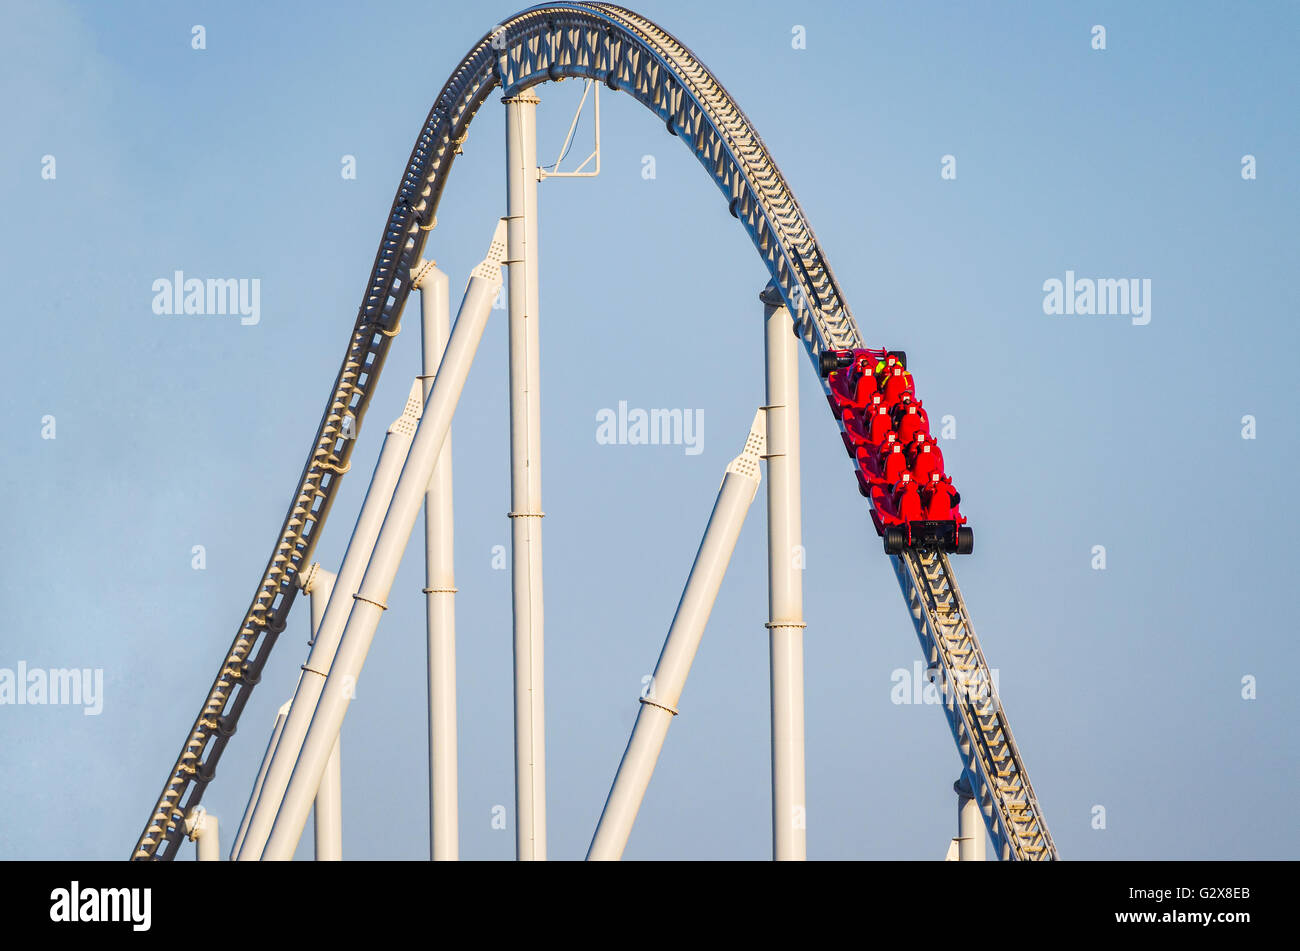 Formula Rossa, the fastest roller coaster in the world in Ferrari World amusement park at Yas Island - Abu Dhabi - Stock Image